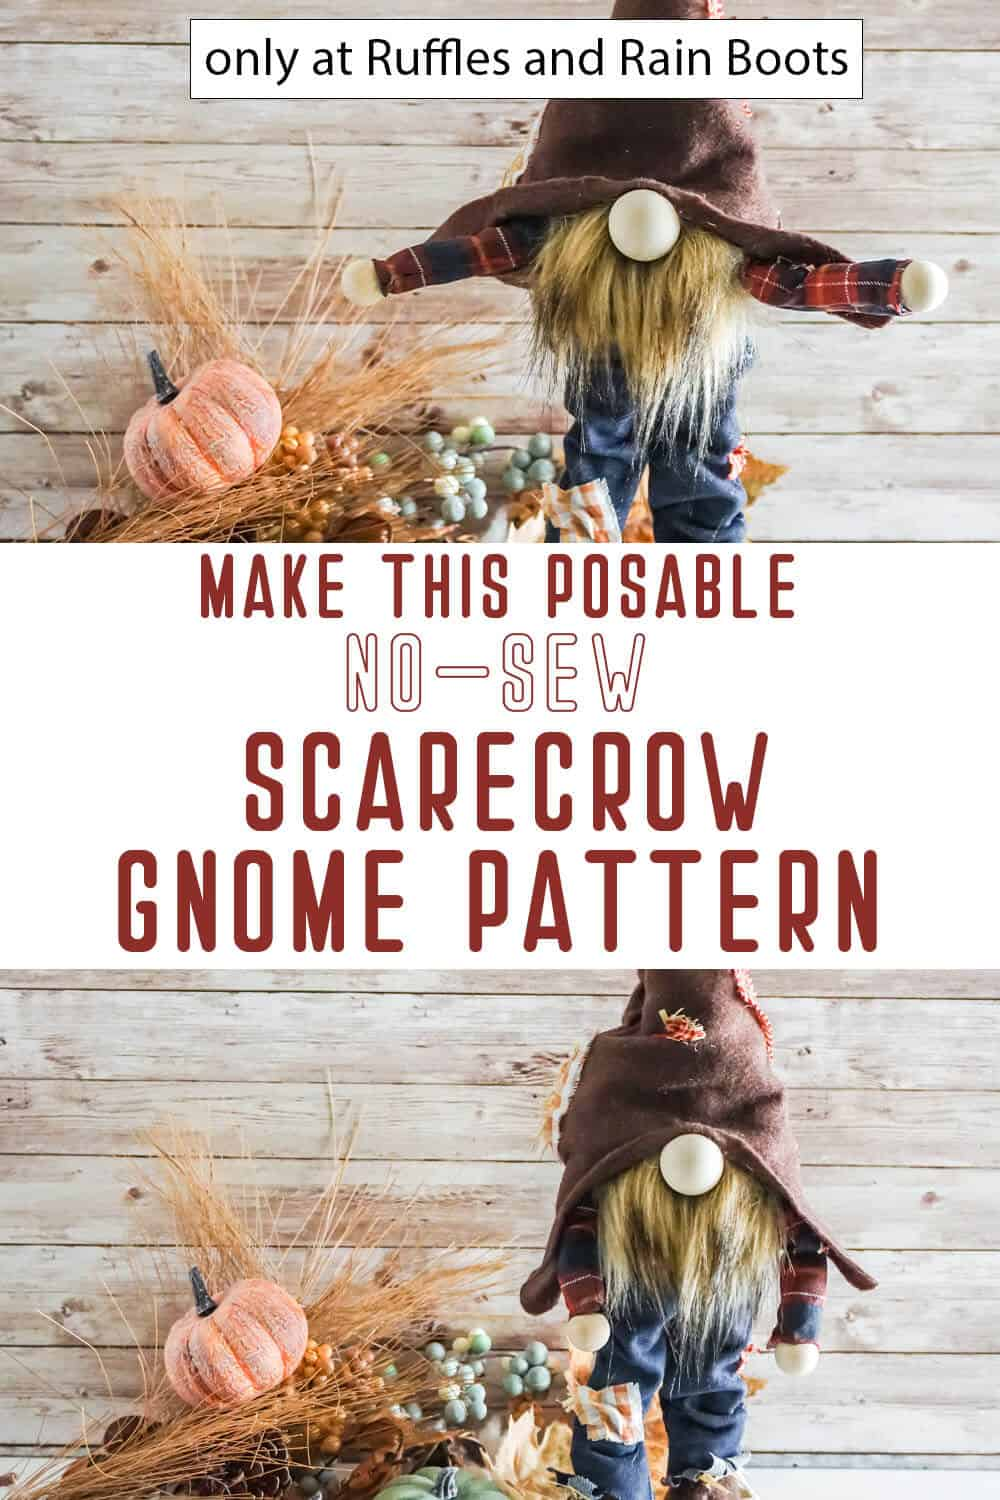 photo collage of no-sew scarecrow gnome pattern with text which reads make this posable no-sew scarecrow gnome pattern